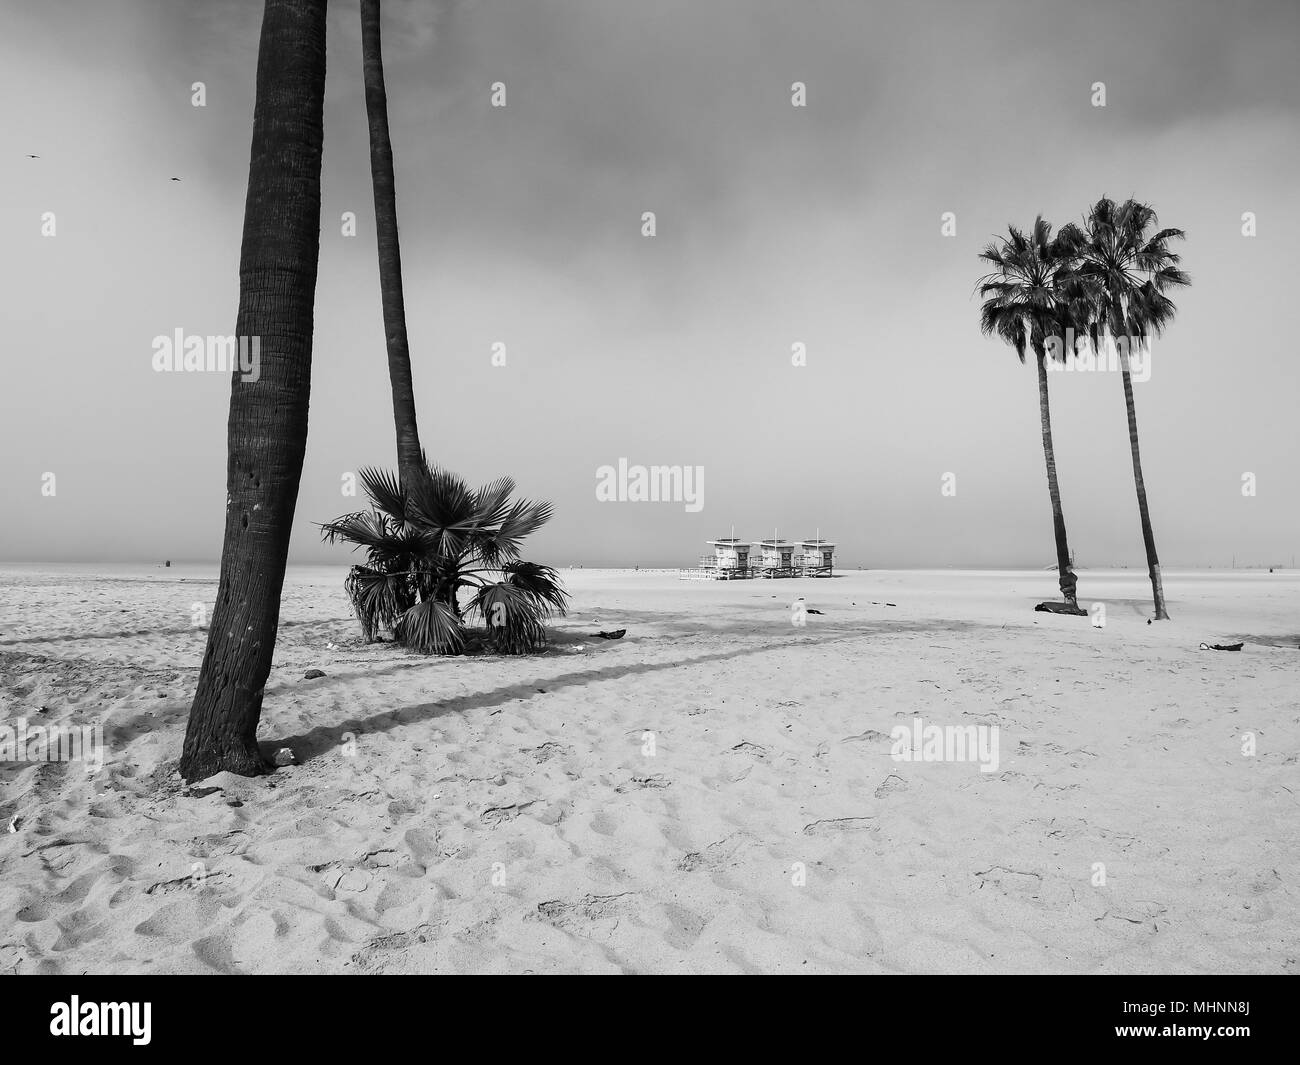 lifeguard cabins and palm trees in venice beach Stock Photo